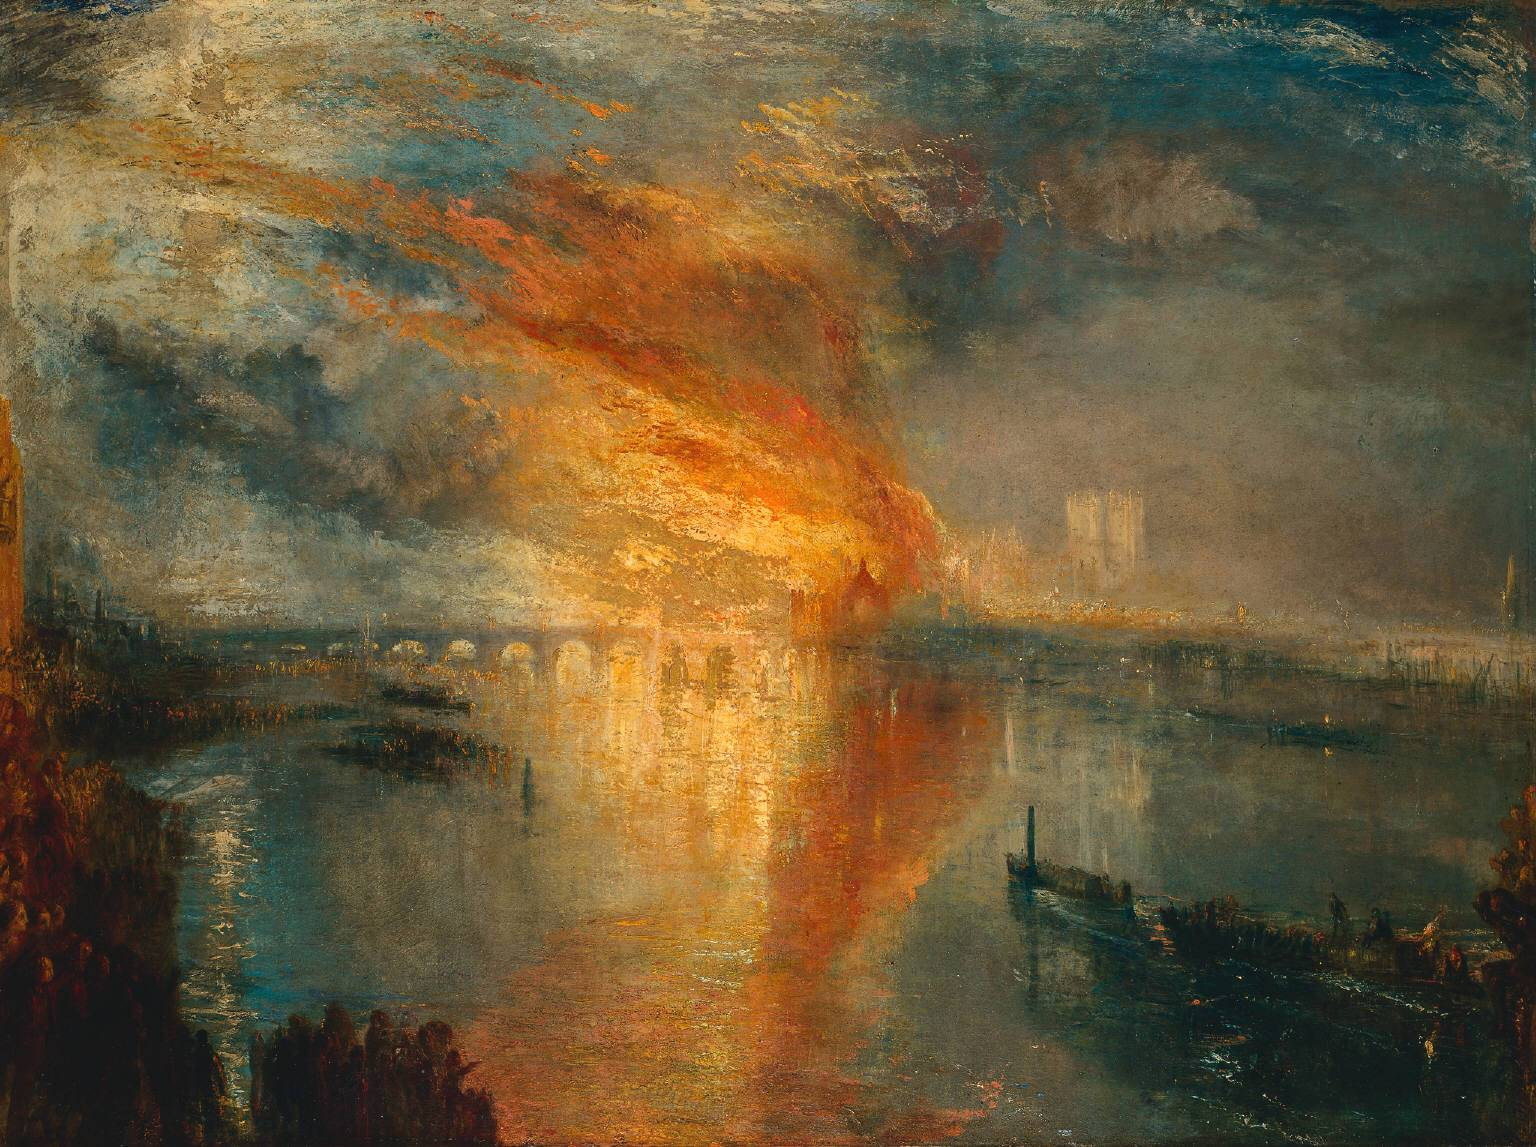 William Turner, The Burning of The Houses of Parliament, 1835.